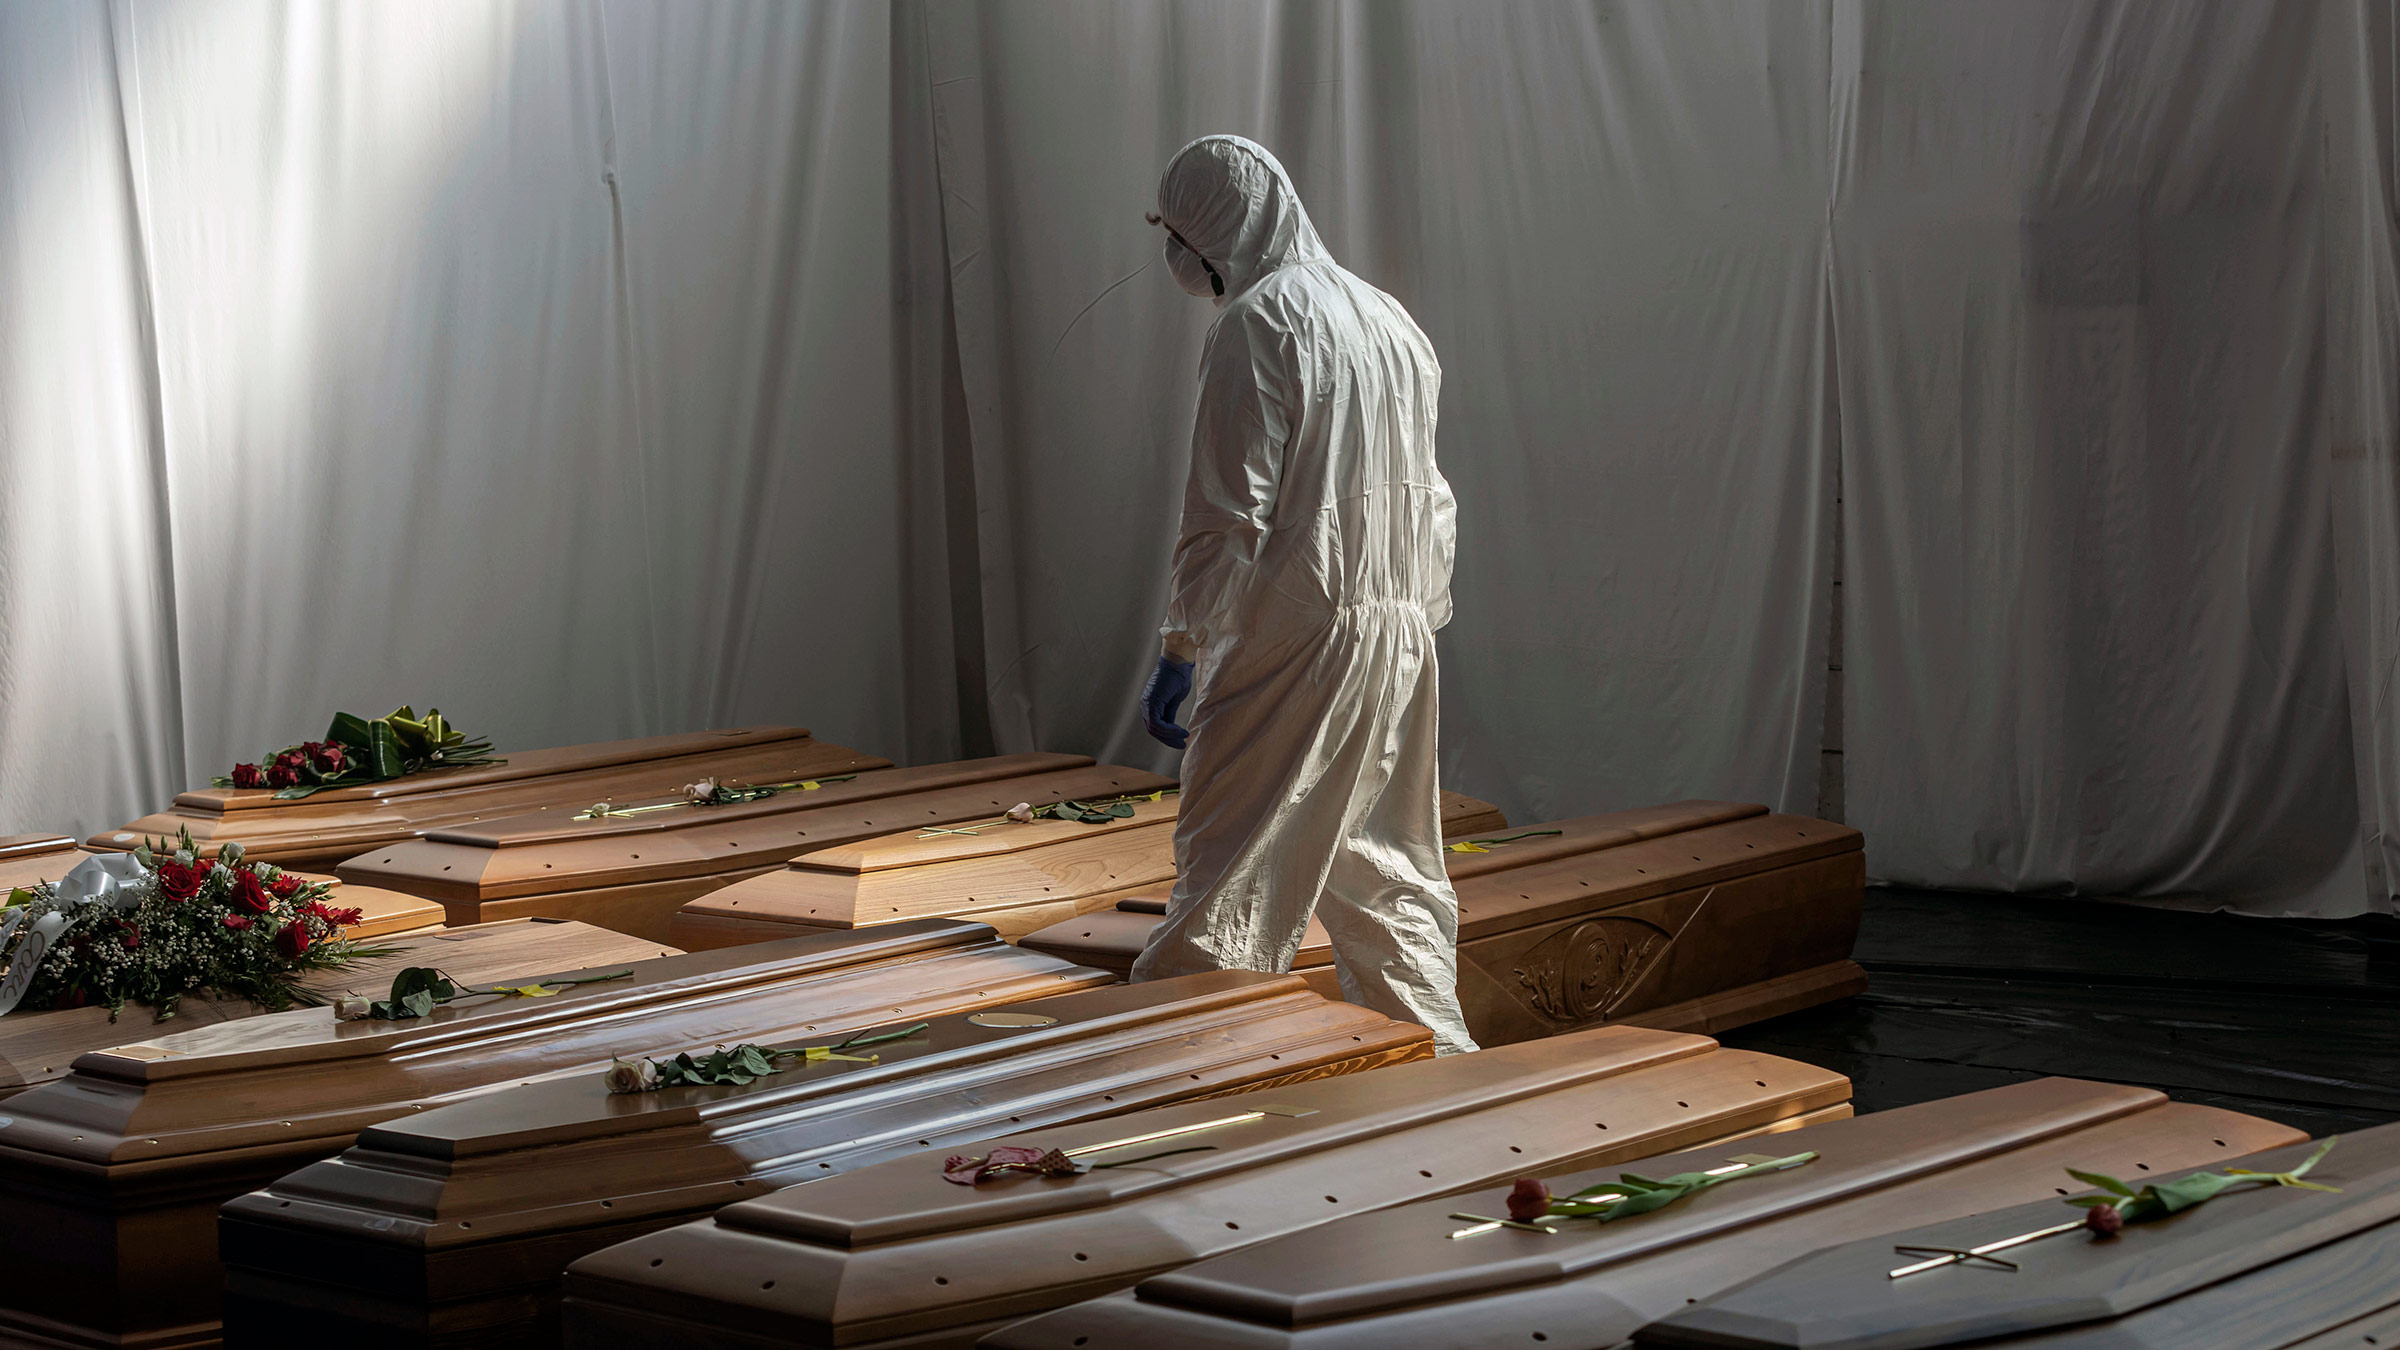 A Civil Protection member walks past the coffins of Covid-19 victims in Ponte San Pietro, Italy, on April 7, 2020.